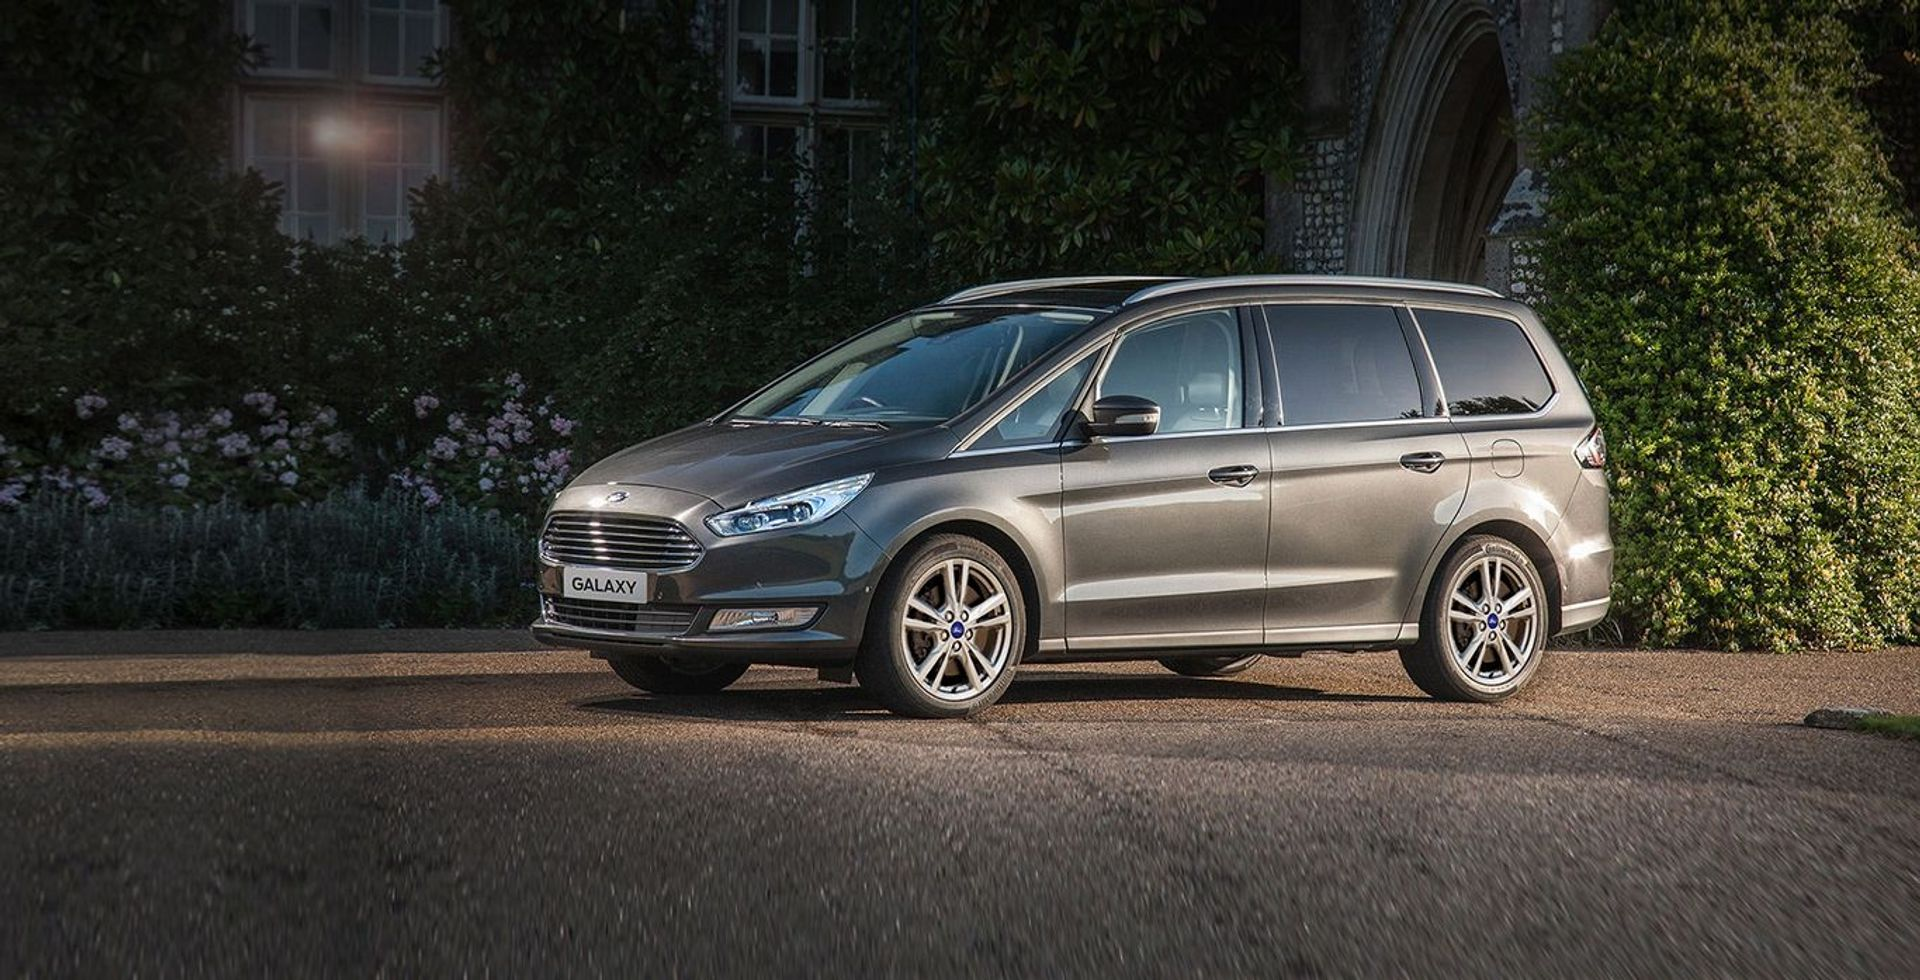 Ford Galaxy TDCi image